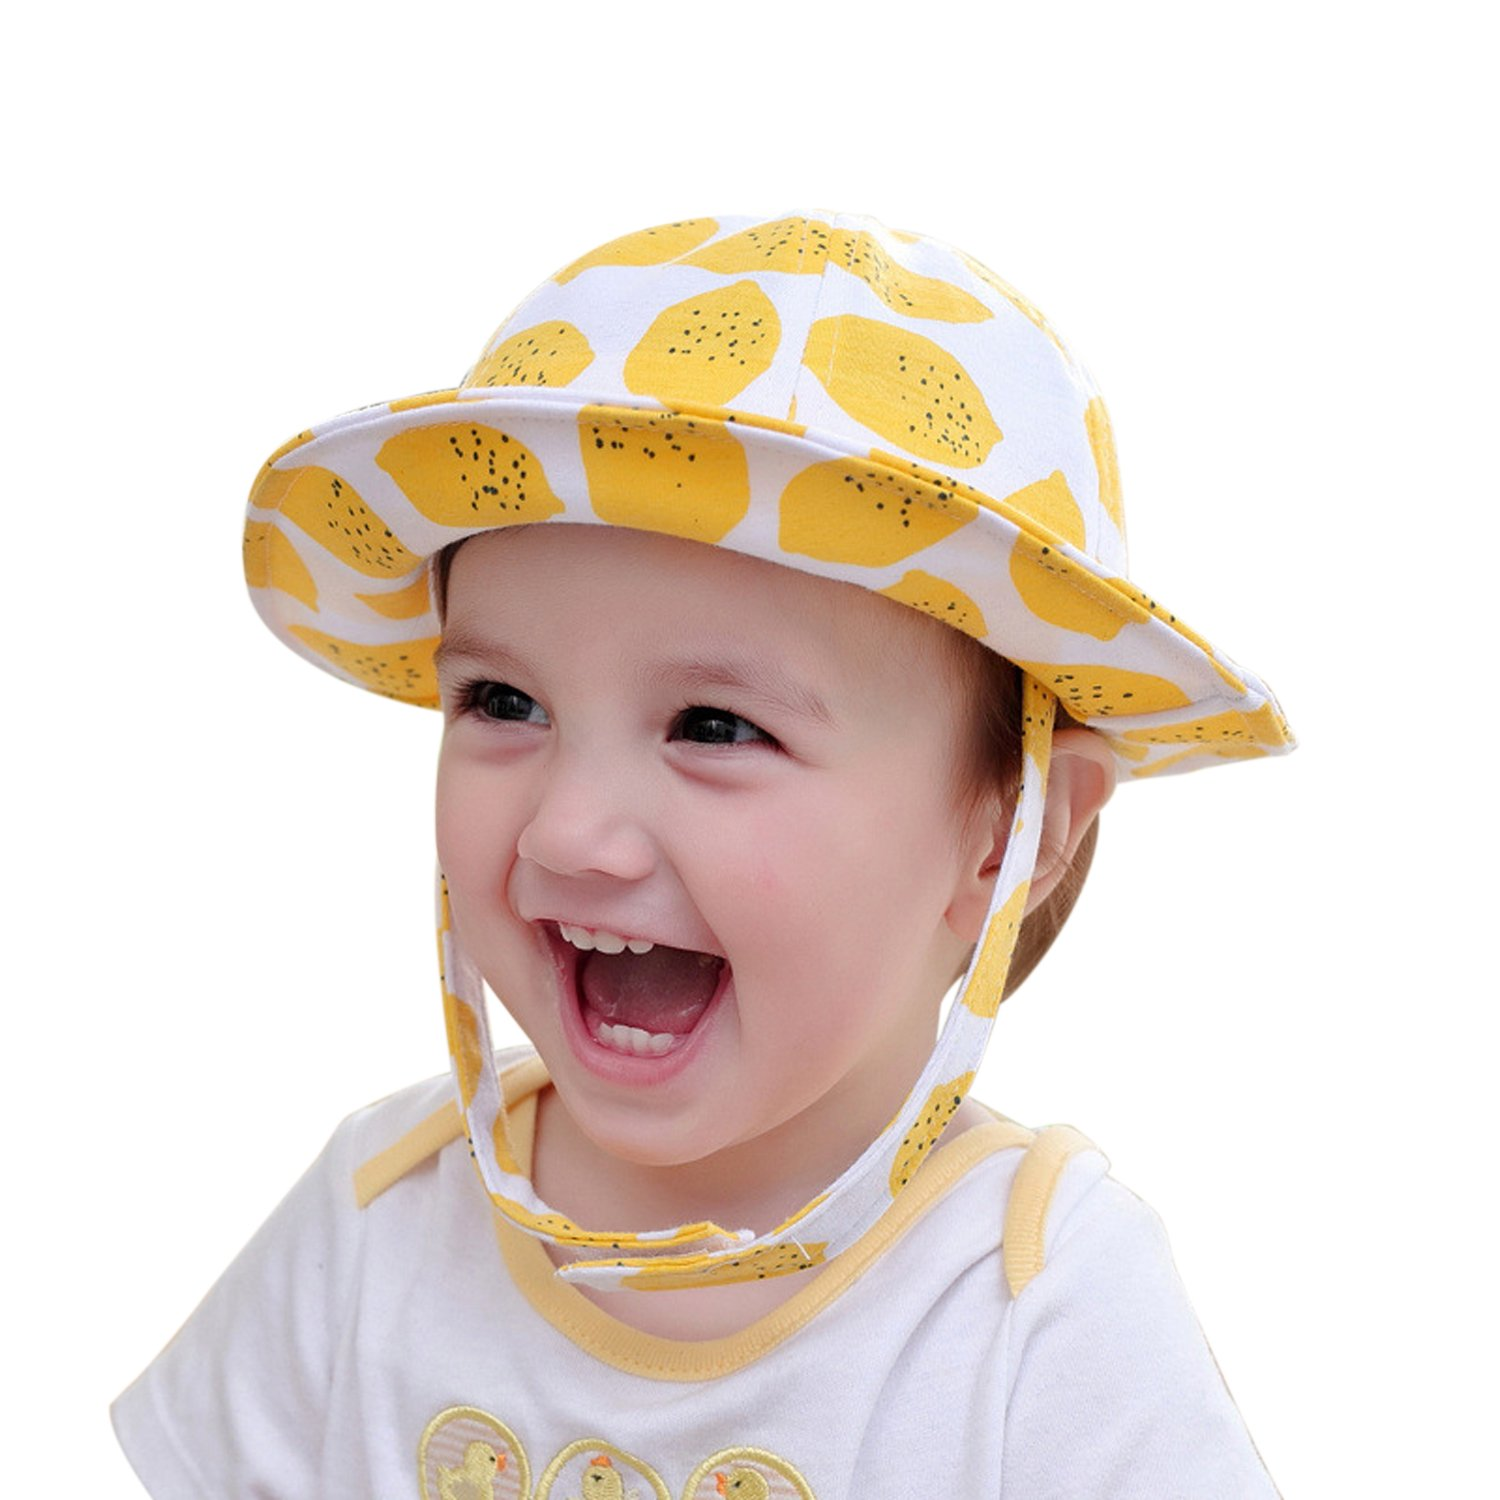 Amazon.com  Evelin LEE Baby Infant Lovely Floral Embroidered Floppy Wide  Brim Sun Cap Summer Outdoor Baby Girl Boy Sun Beach Cotton Hat-Style 1  Yellow  ... 2f5912baf0c7